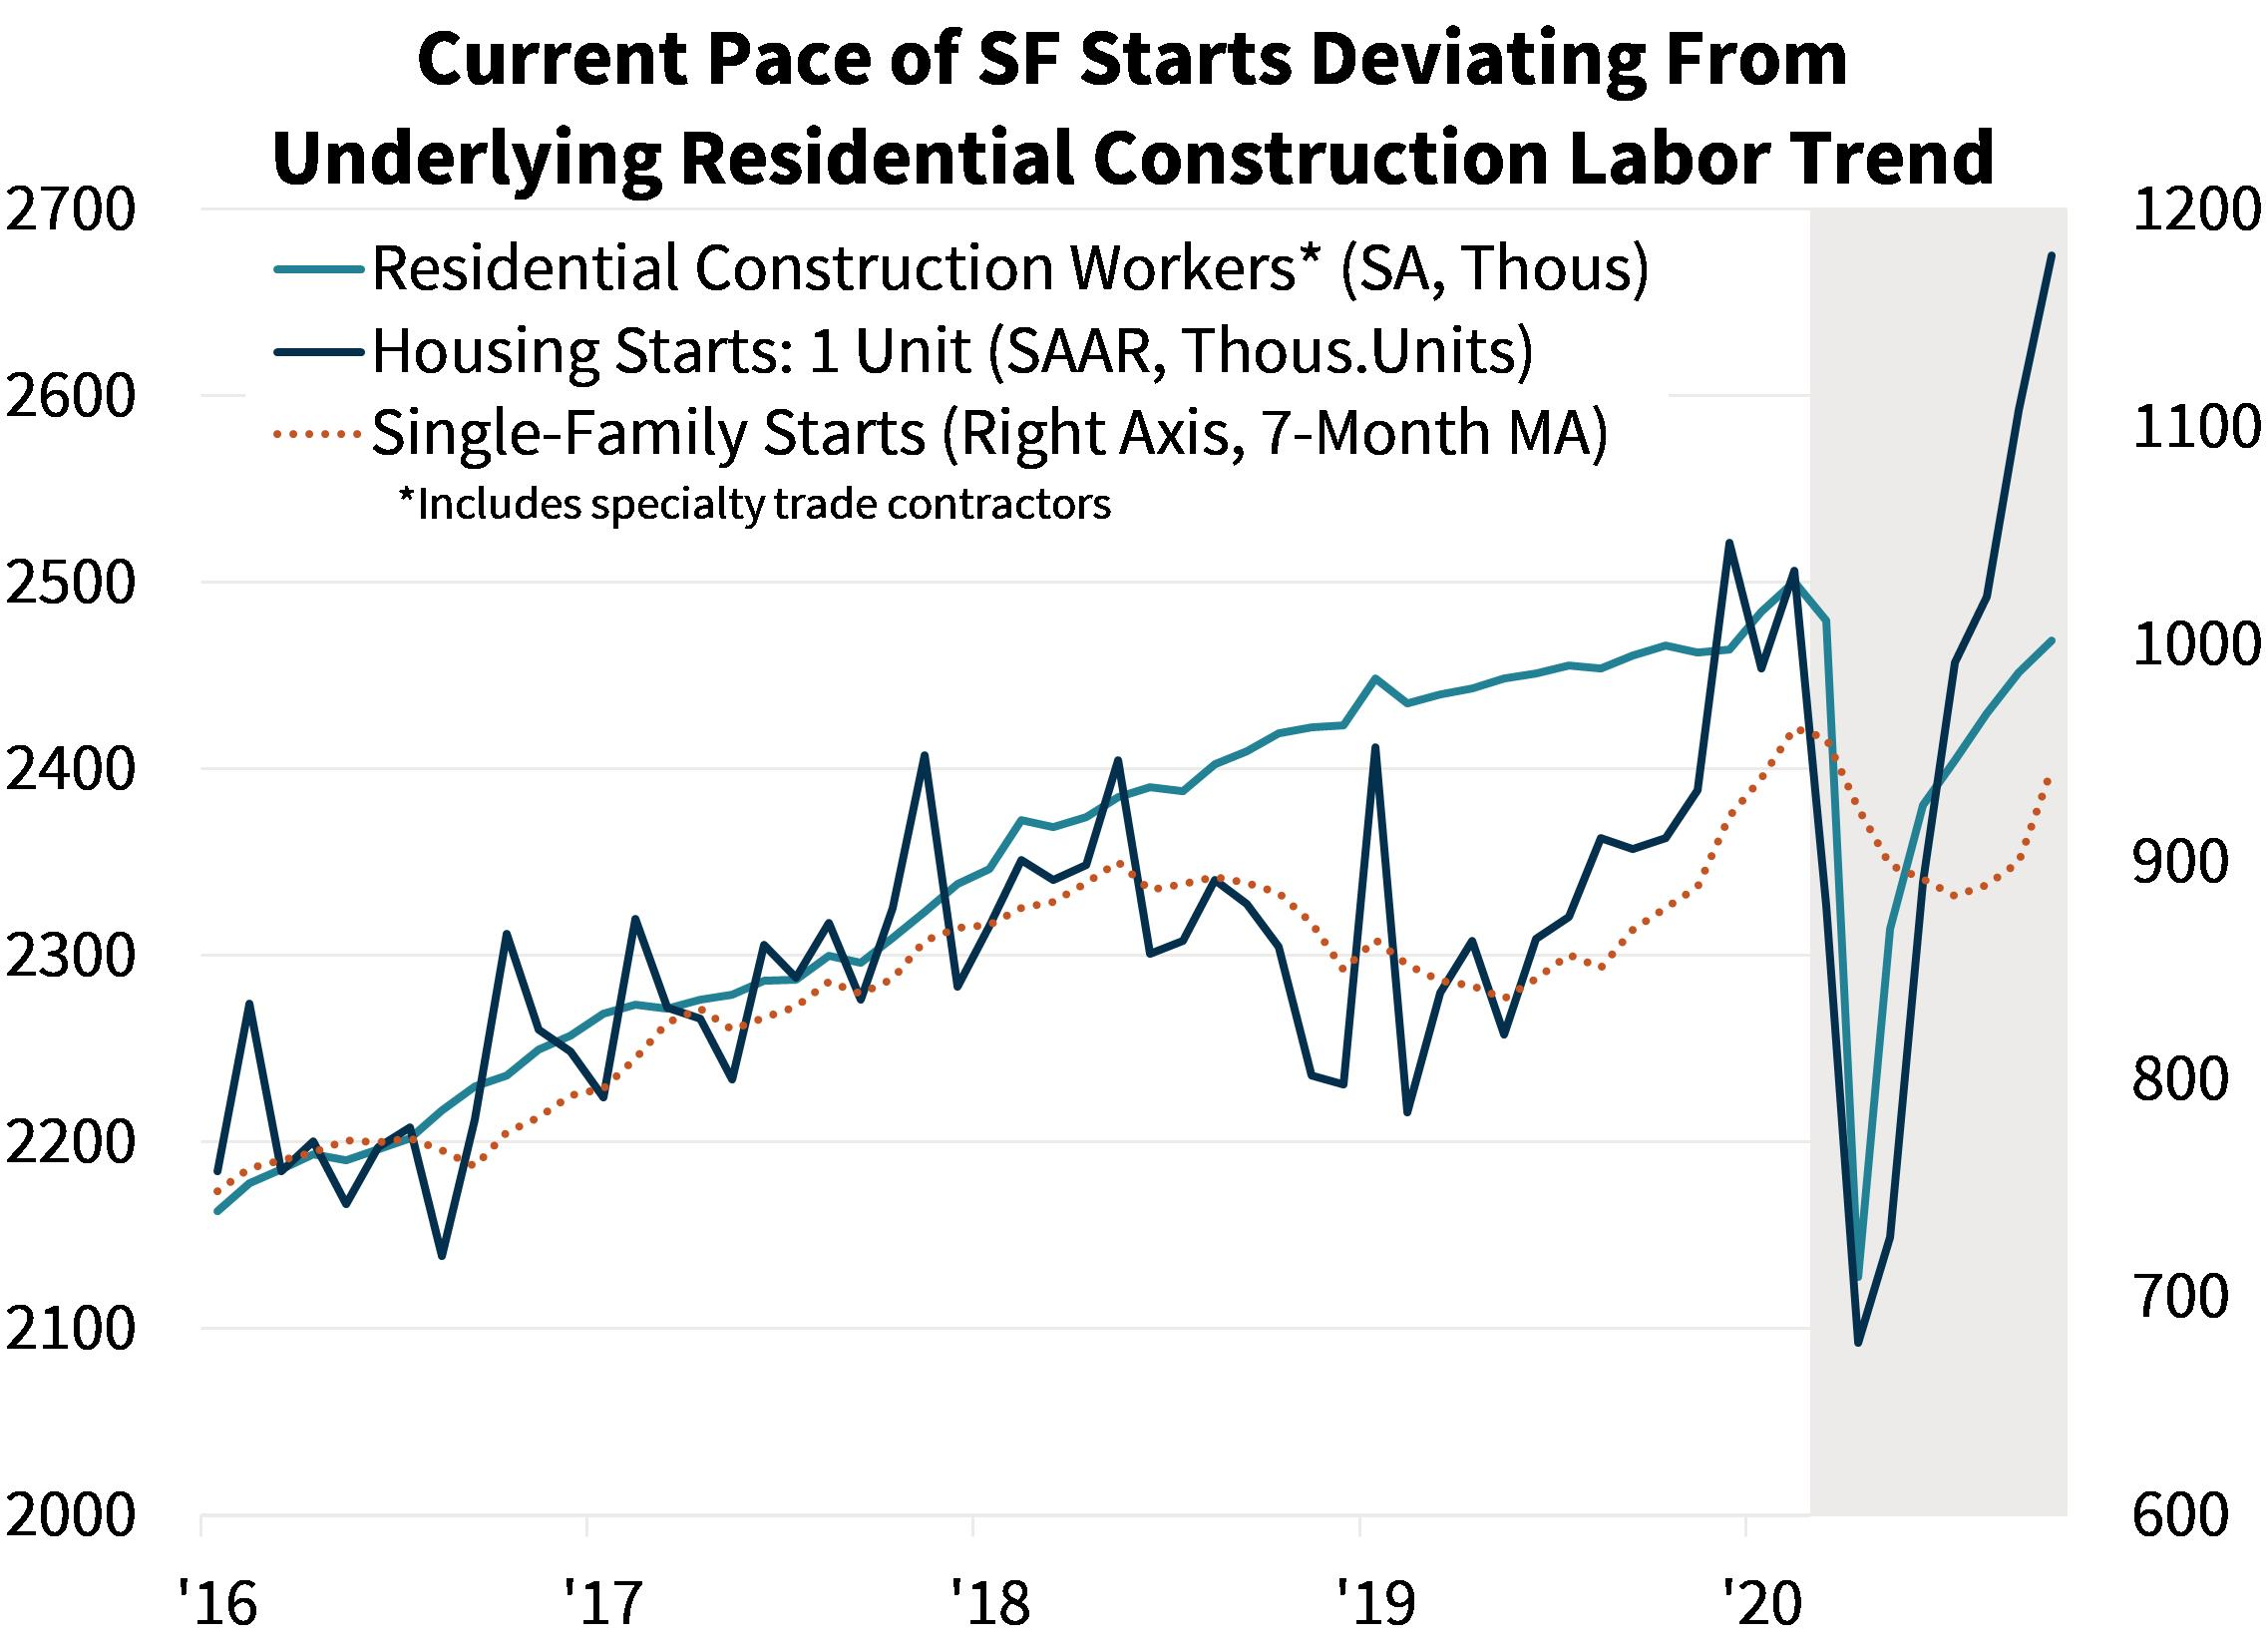 Current Pace of SF Starts Deviating From Underlying Residential Construction Labor Trends